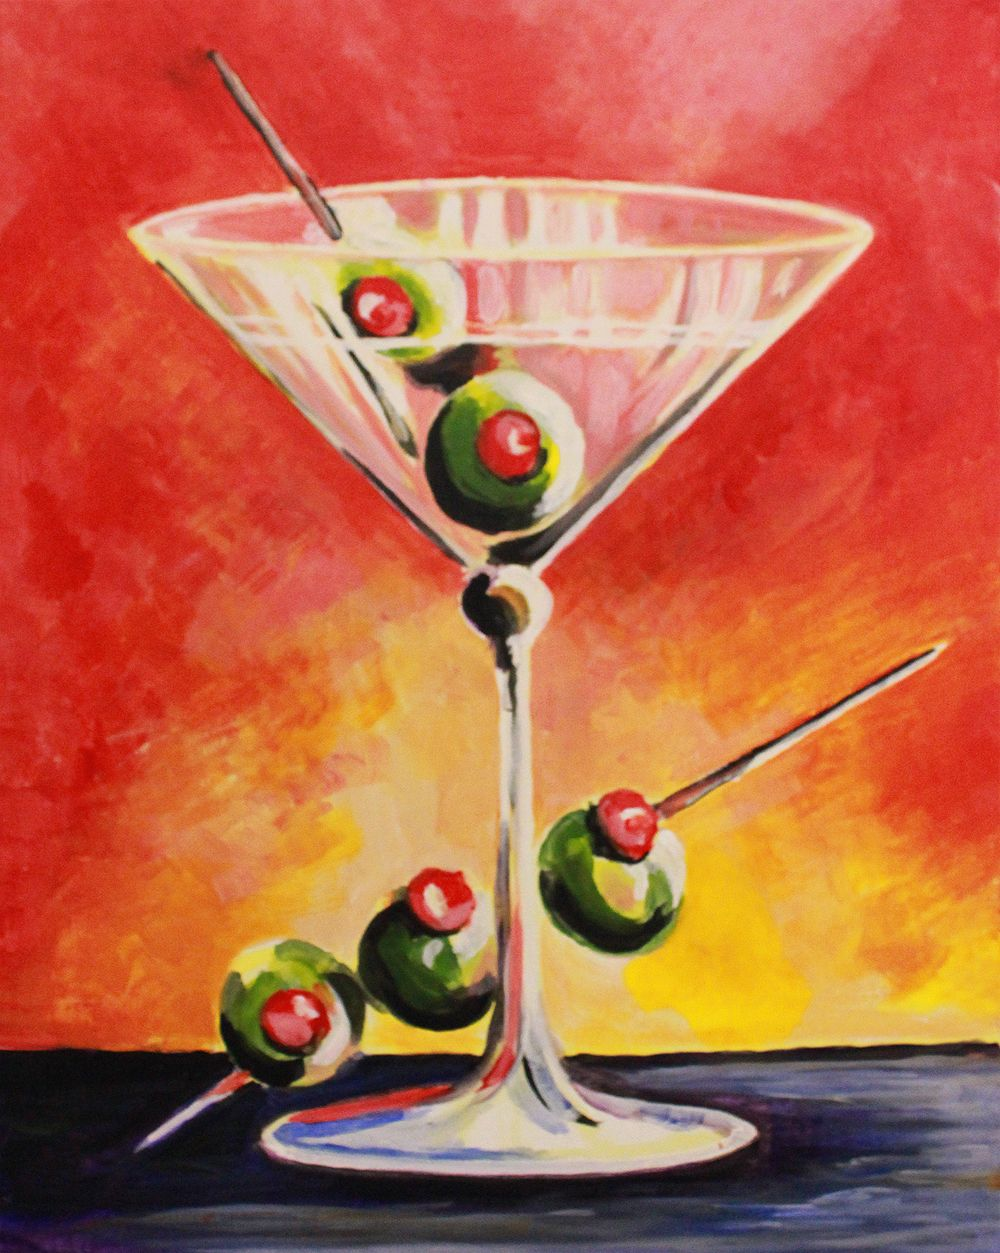 martini painting | Road Show - The Dirty Martini | Wicked Art Bar ...